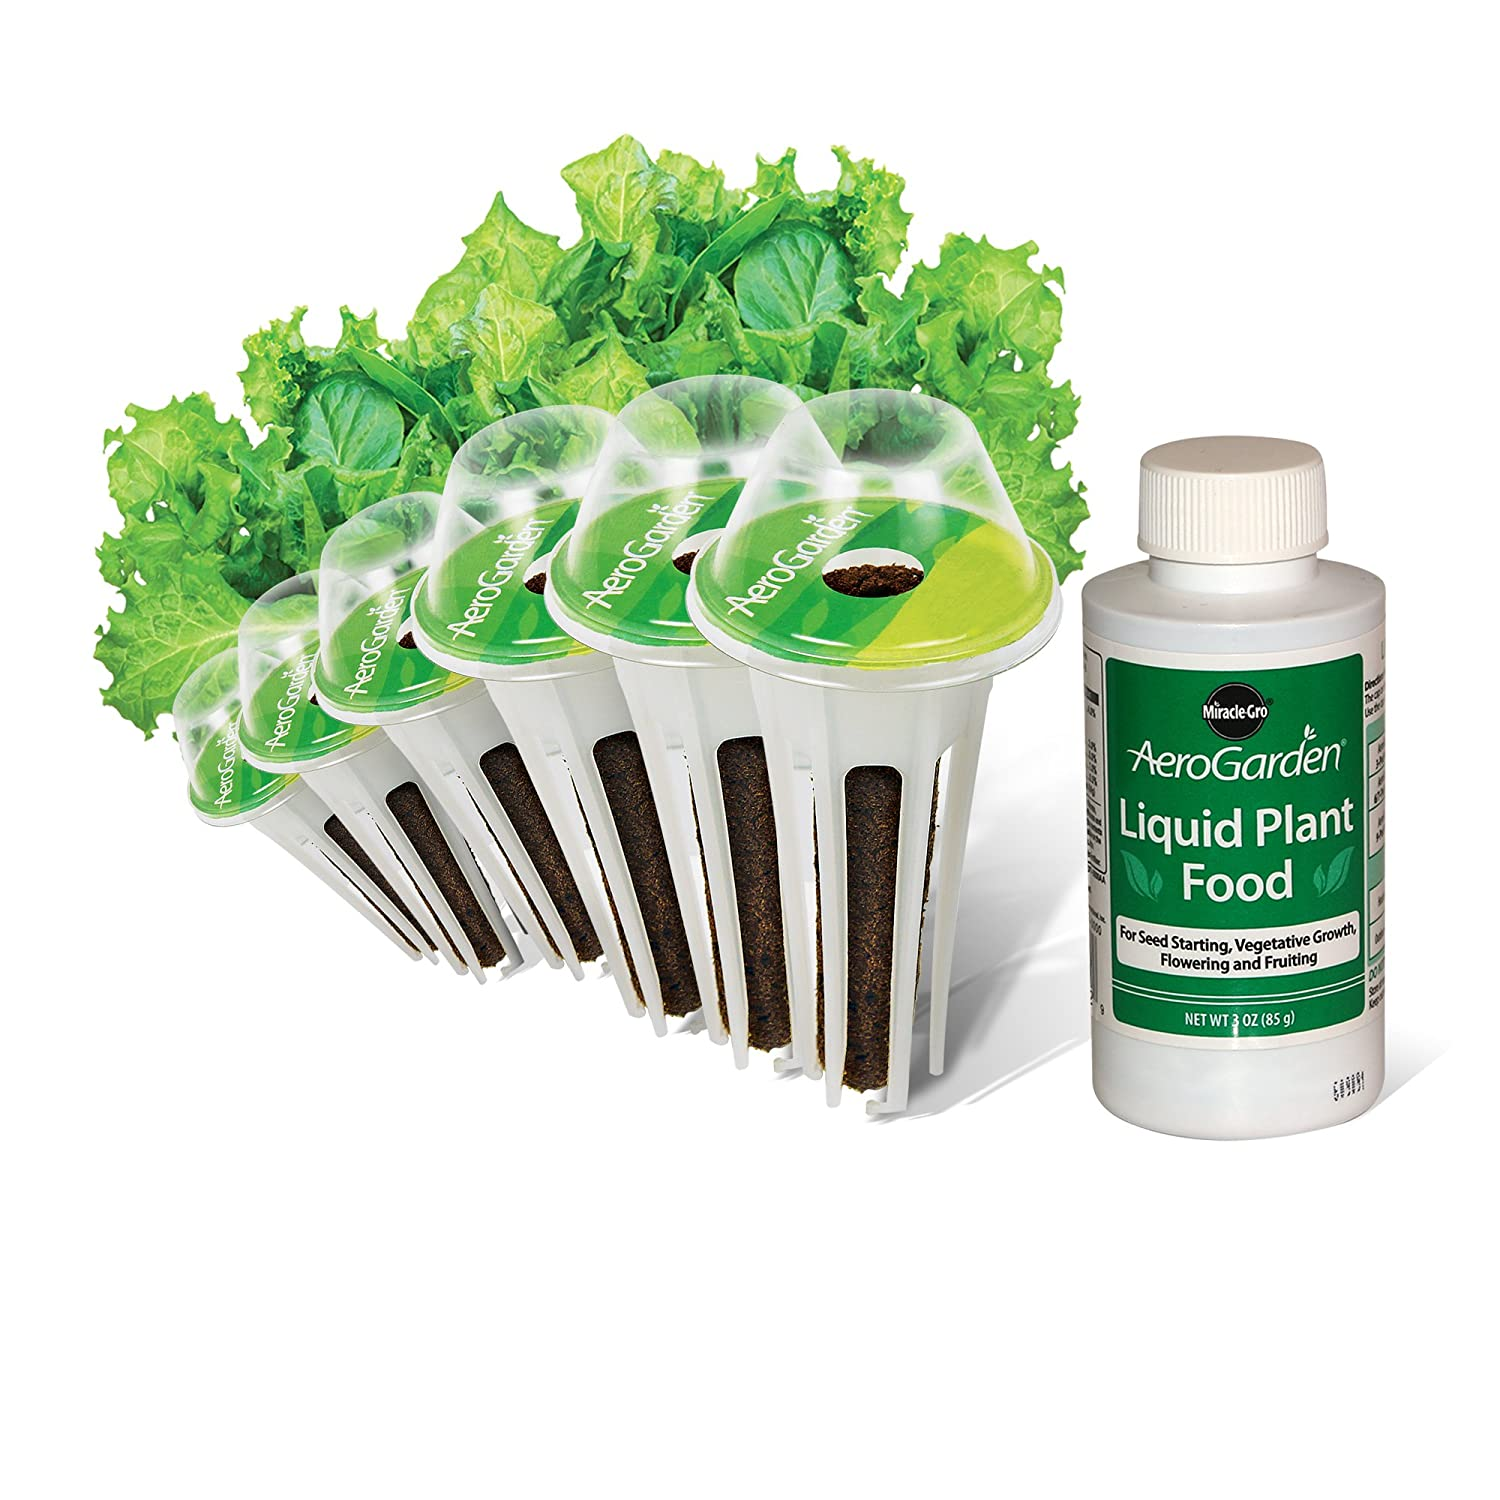 AeroGarden Salad Greens Mix Seed Pod Kit (6-Pod) 806502-0208